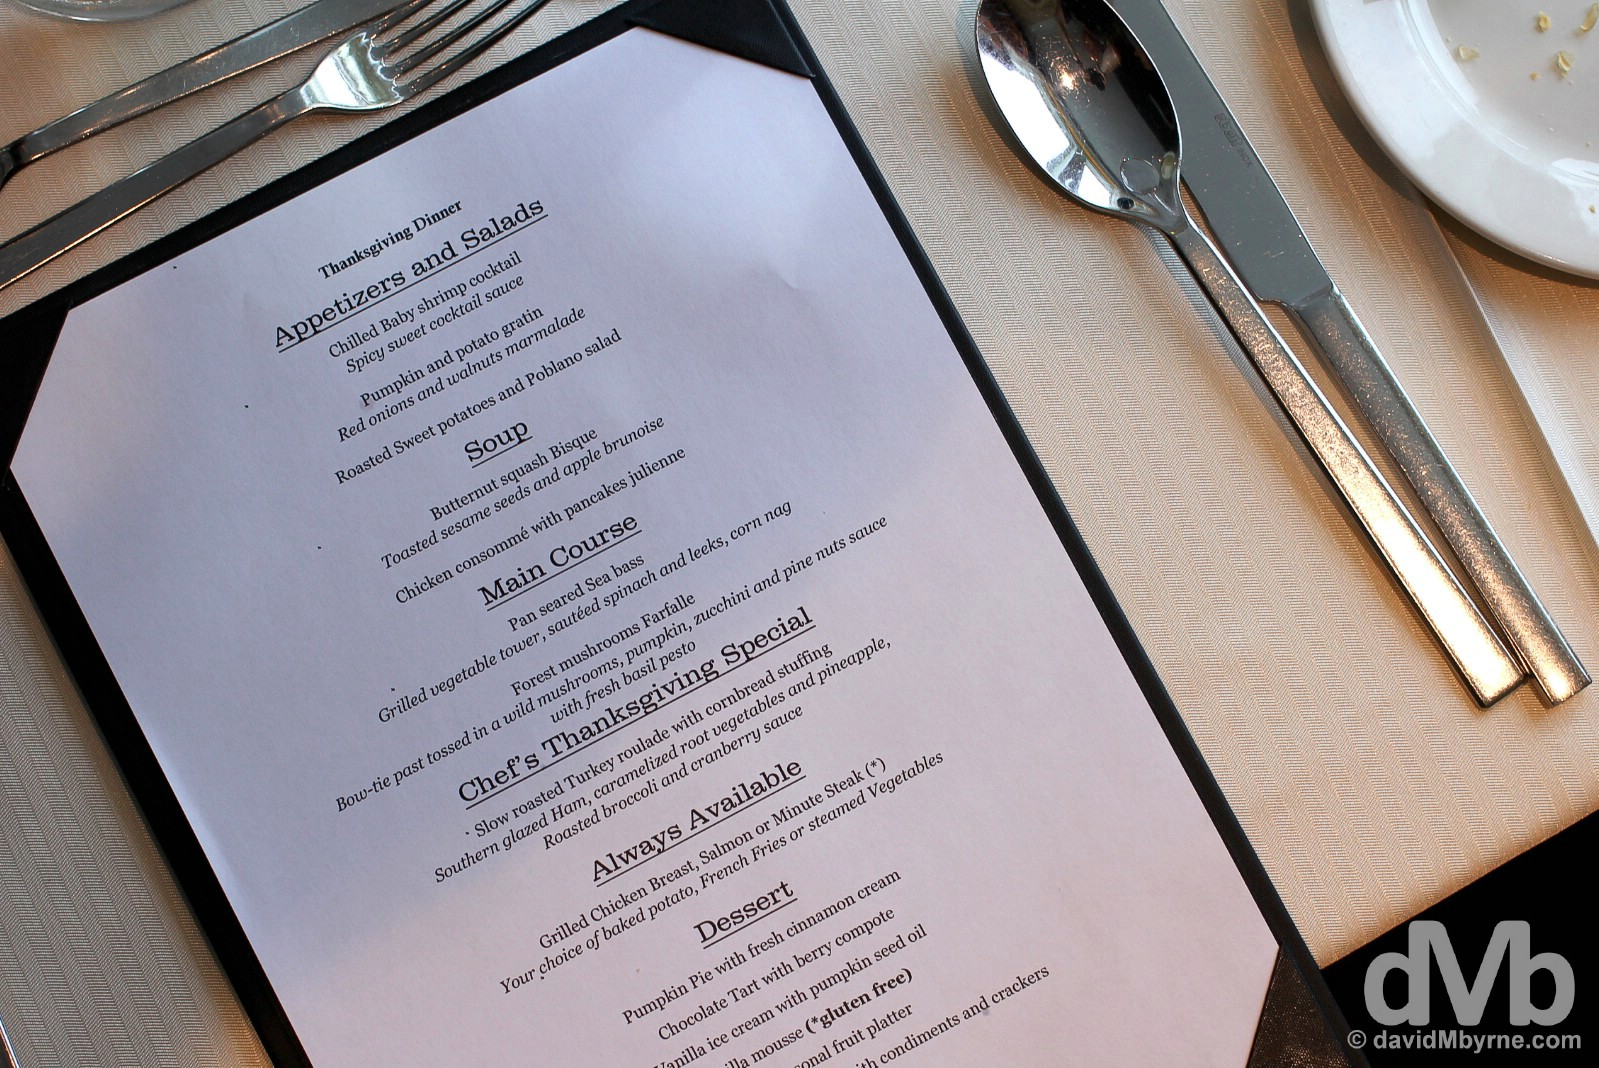 Thanksgiving Dinner Menu 2015 on board the M/V Ocean Endeavour, Beagle Channel. November 26, 2015.